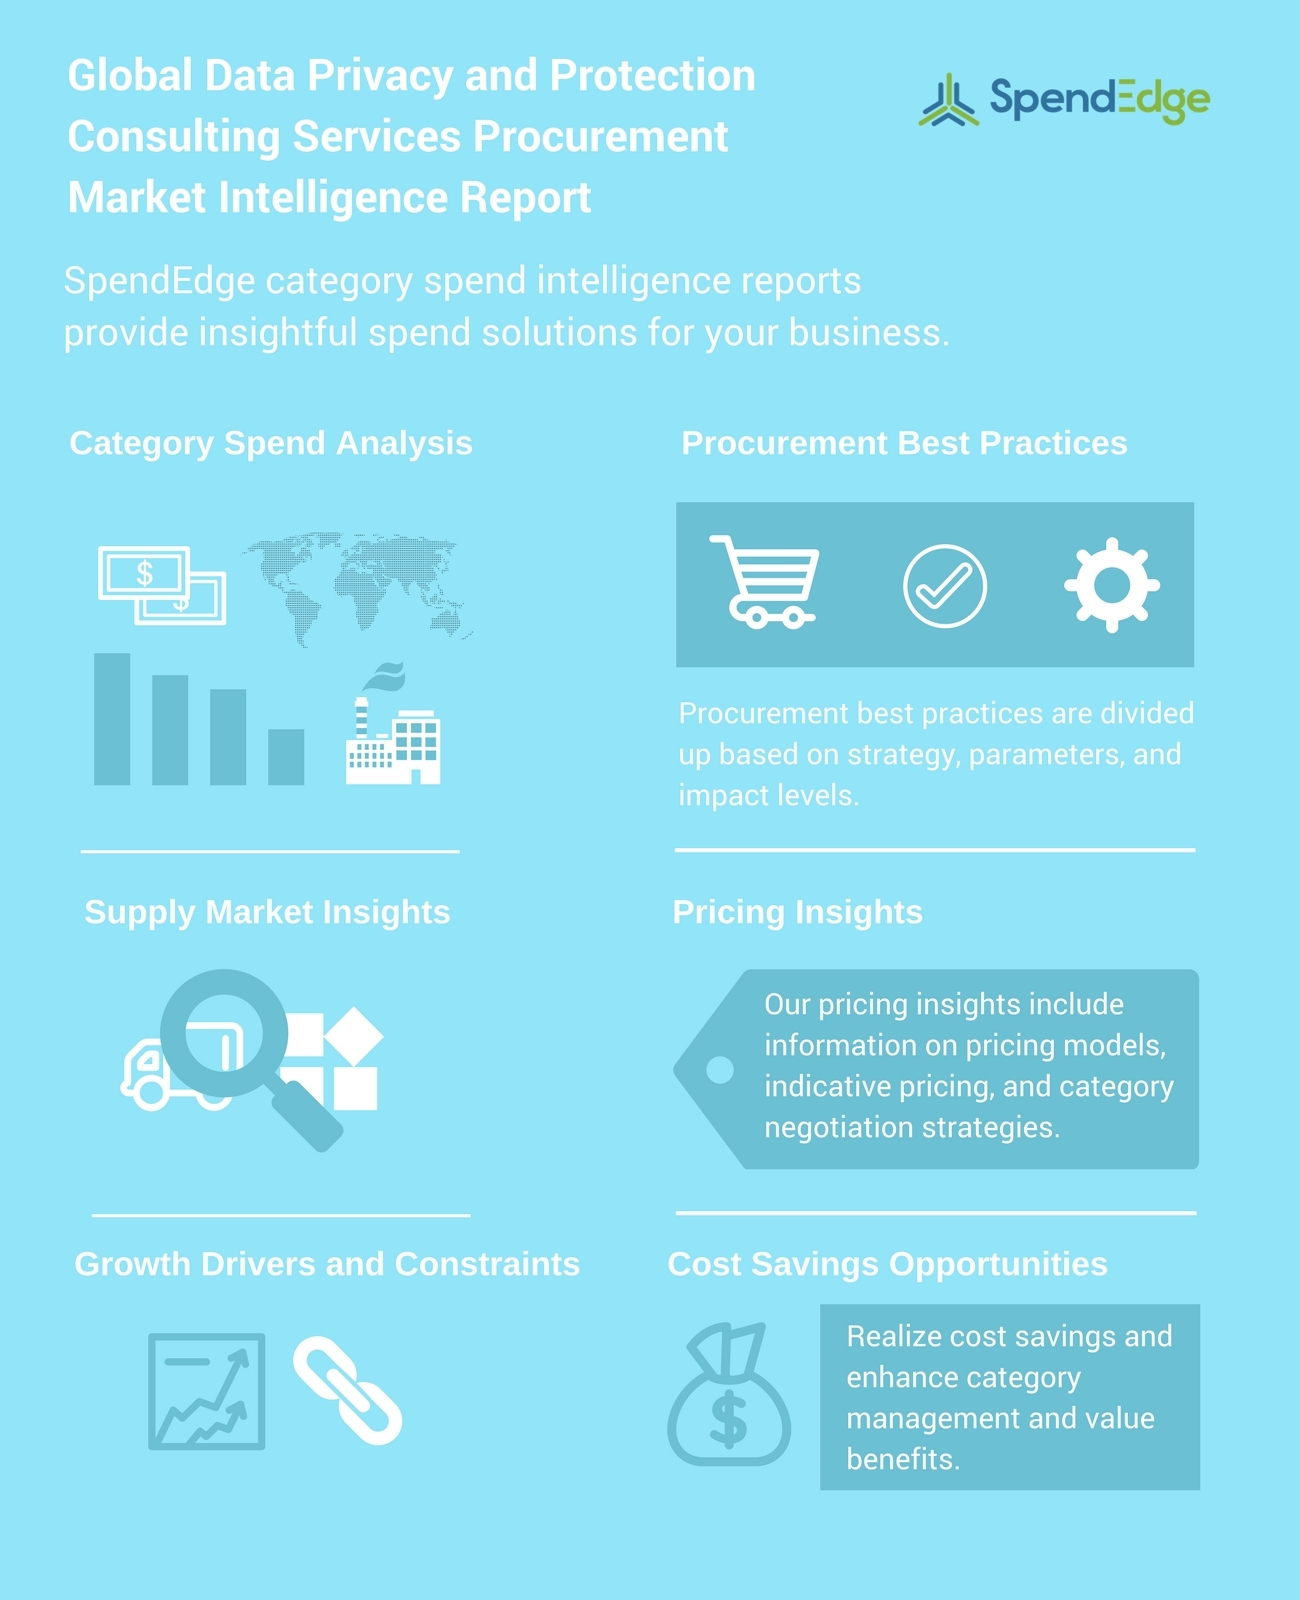 Data Protection Services : Data privacy and protection consulting services market